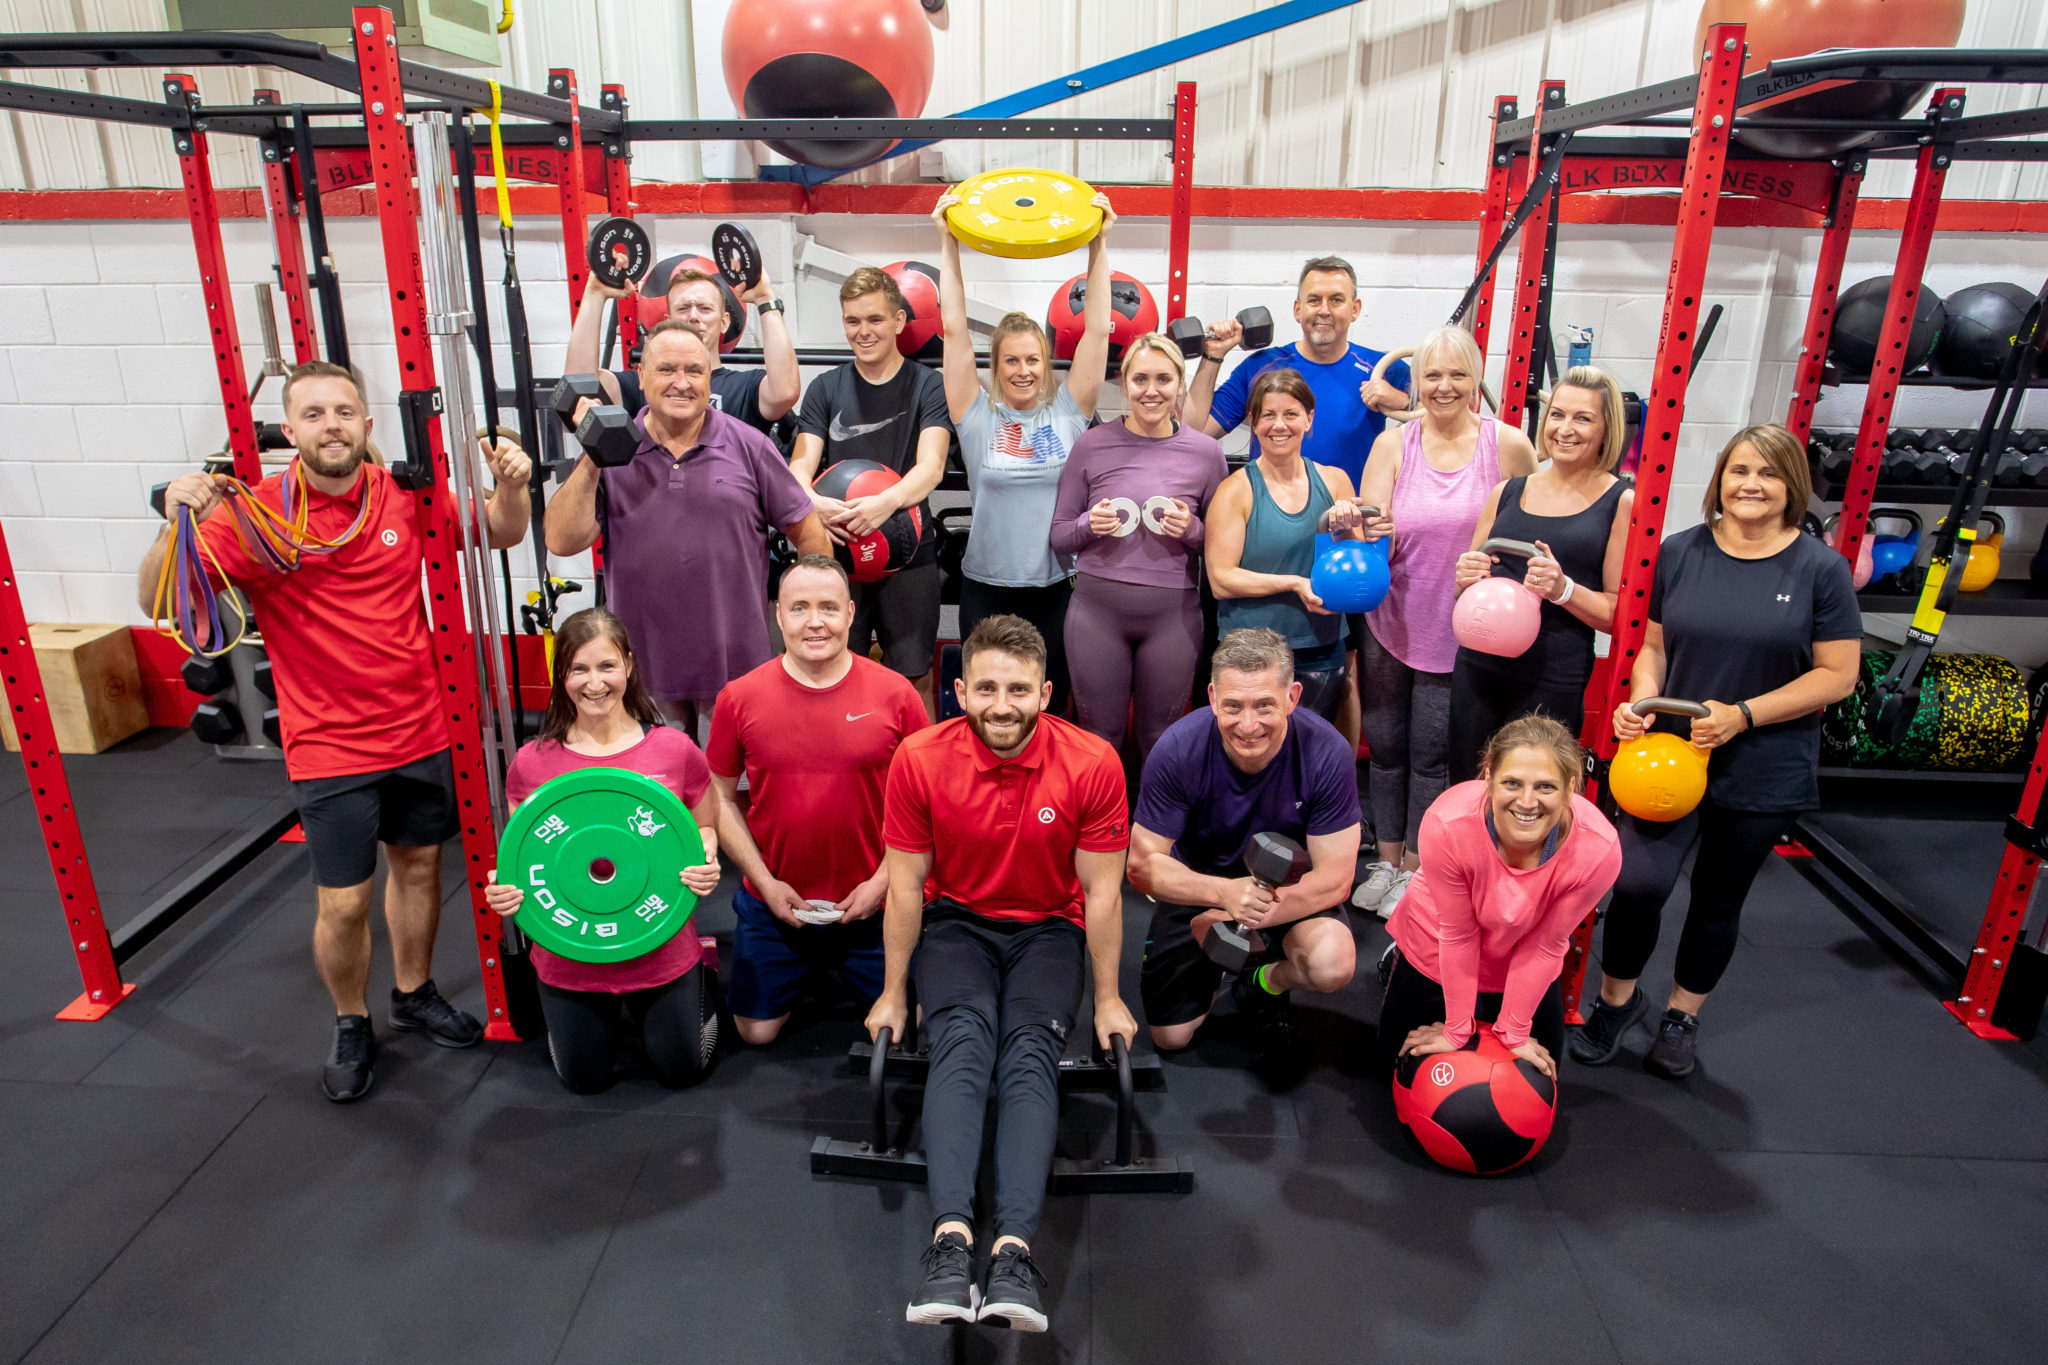 North Shields Personal Training